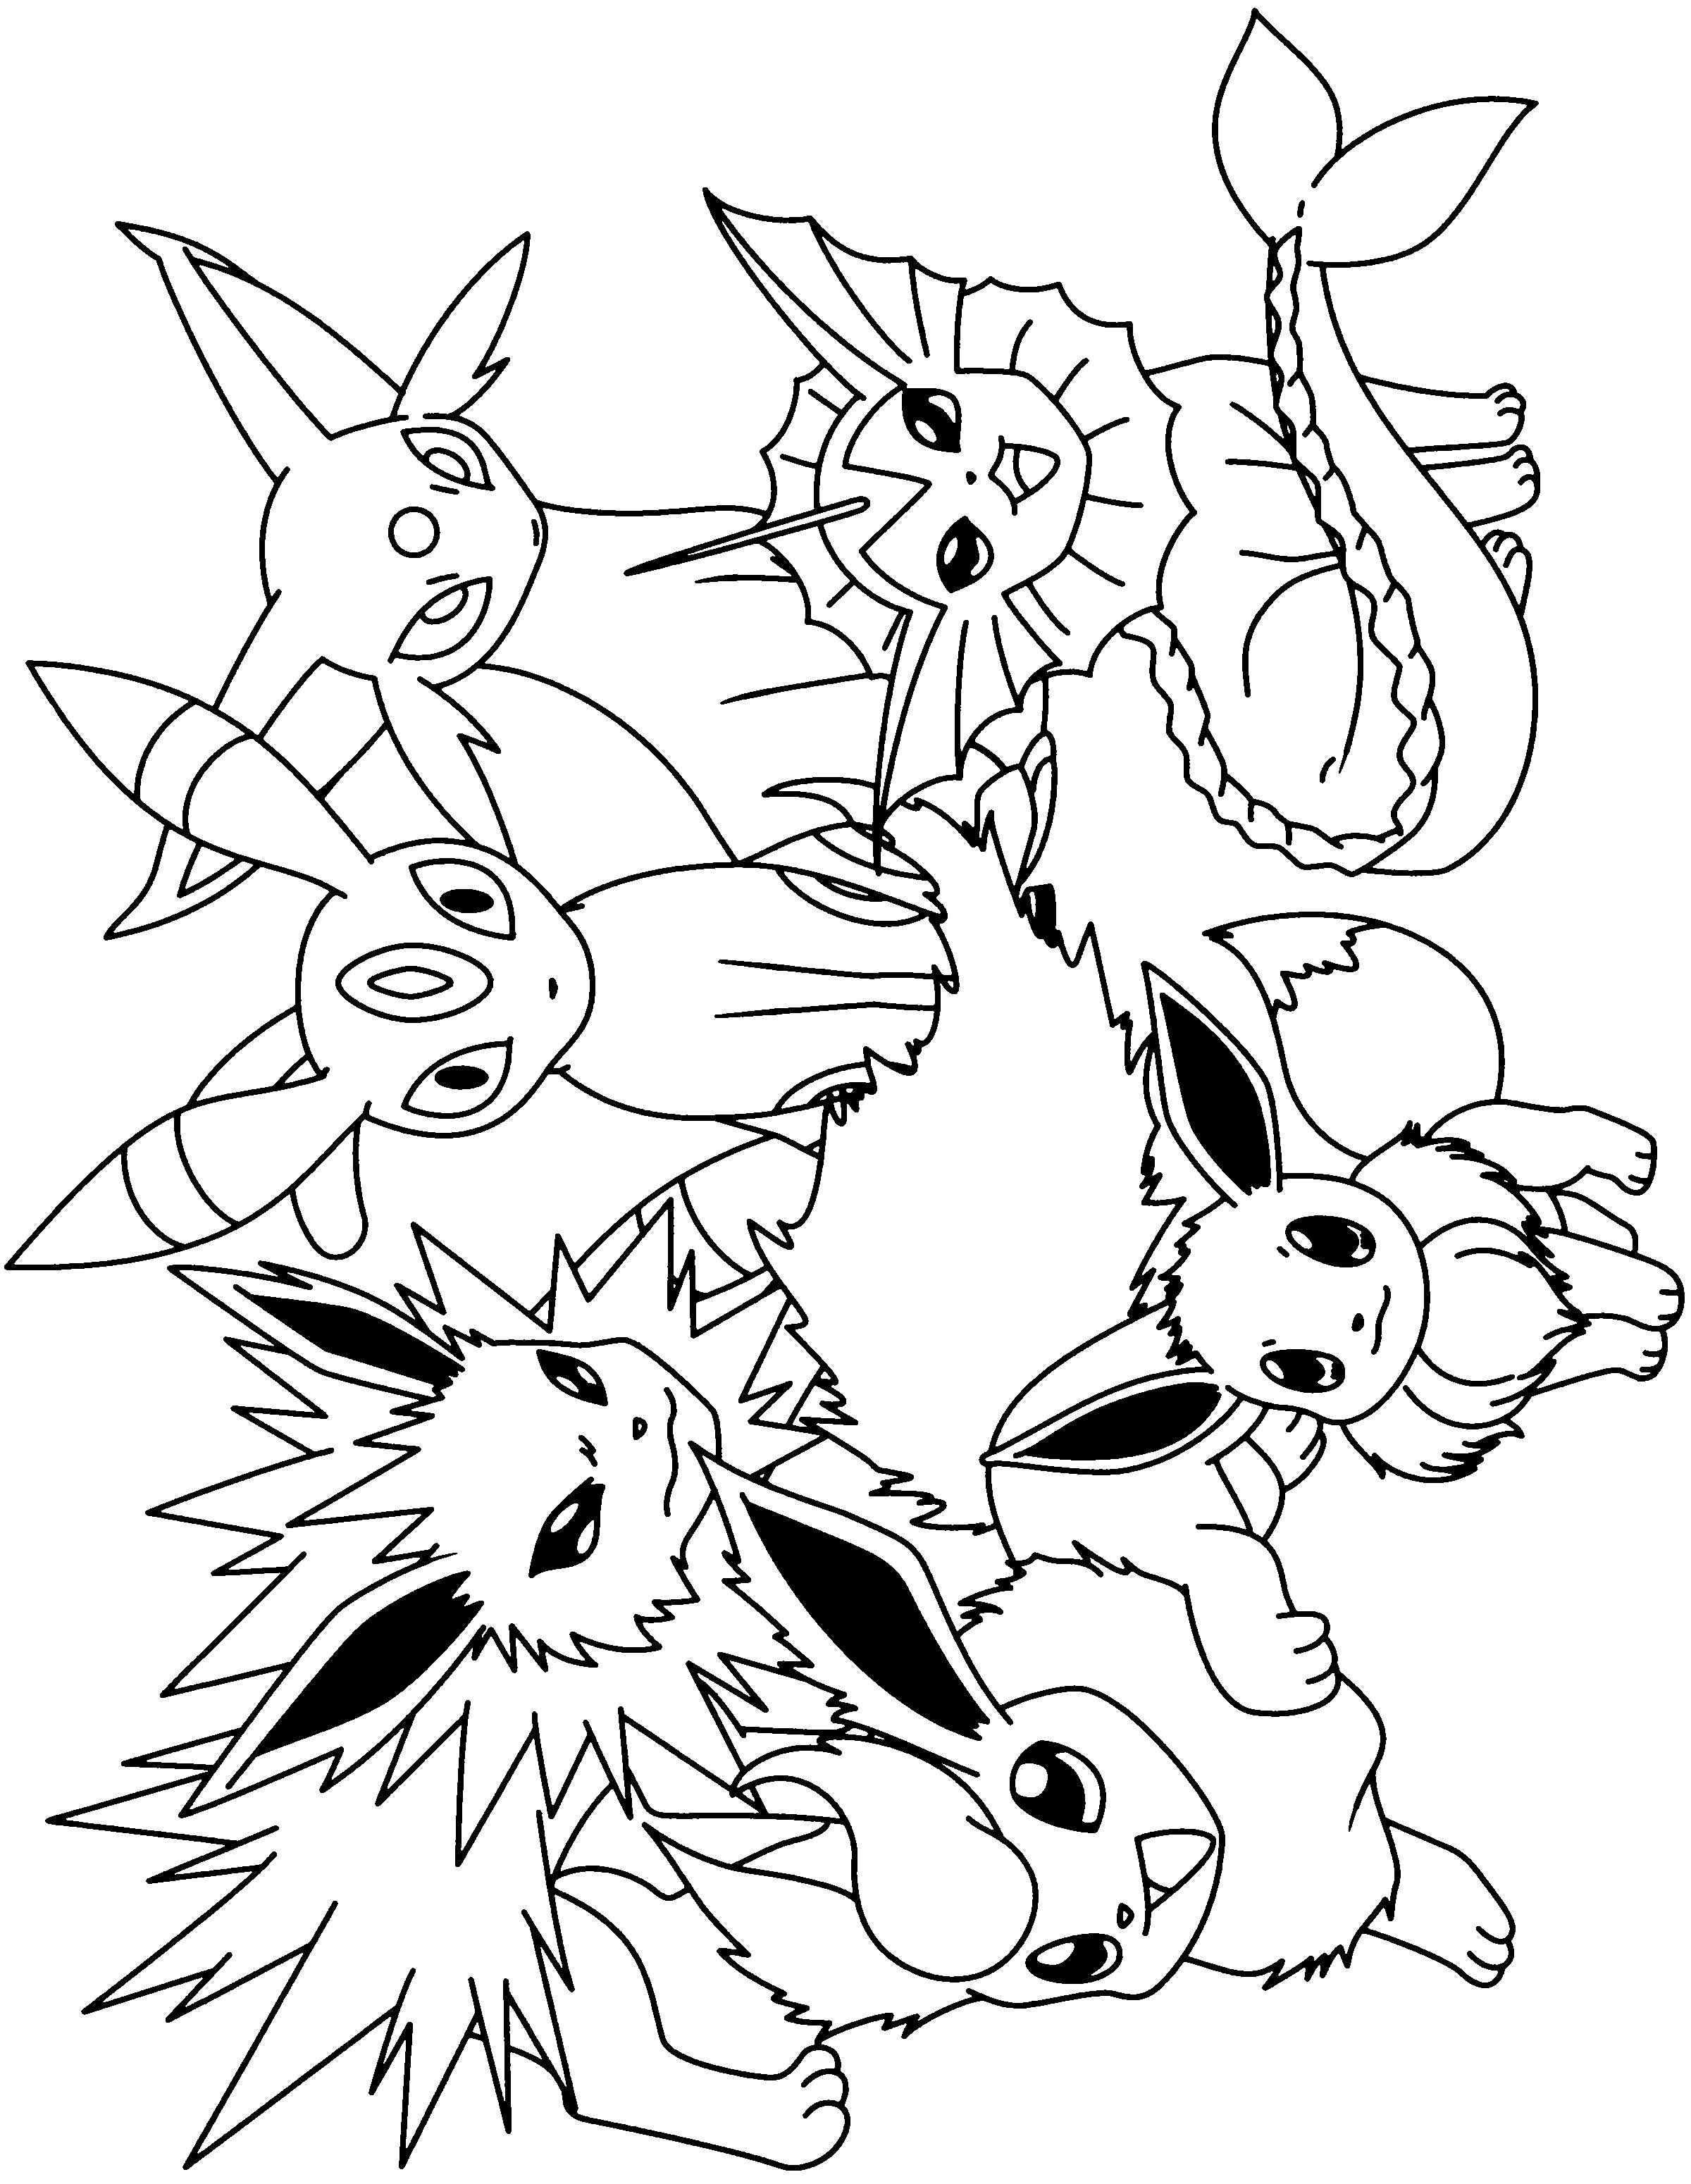 all pokemon coloring pages legendary pokemon coloring pages coloring pages for kids pokemon pages coloring all